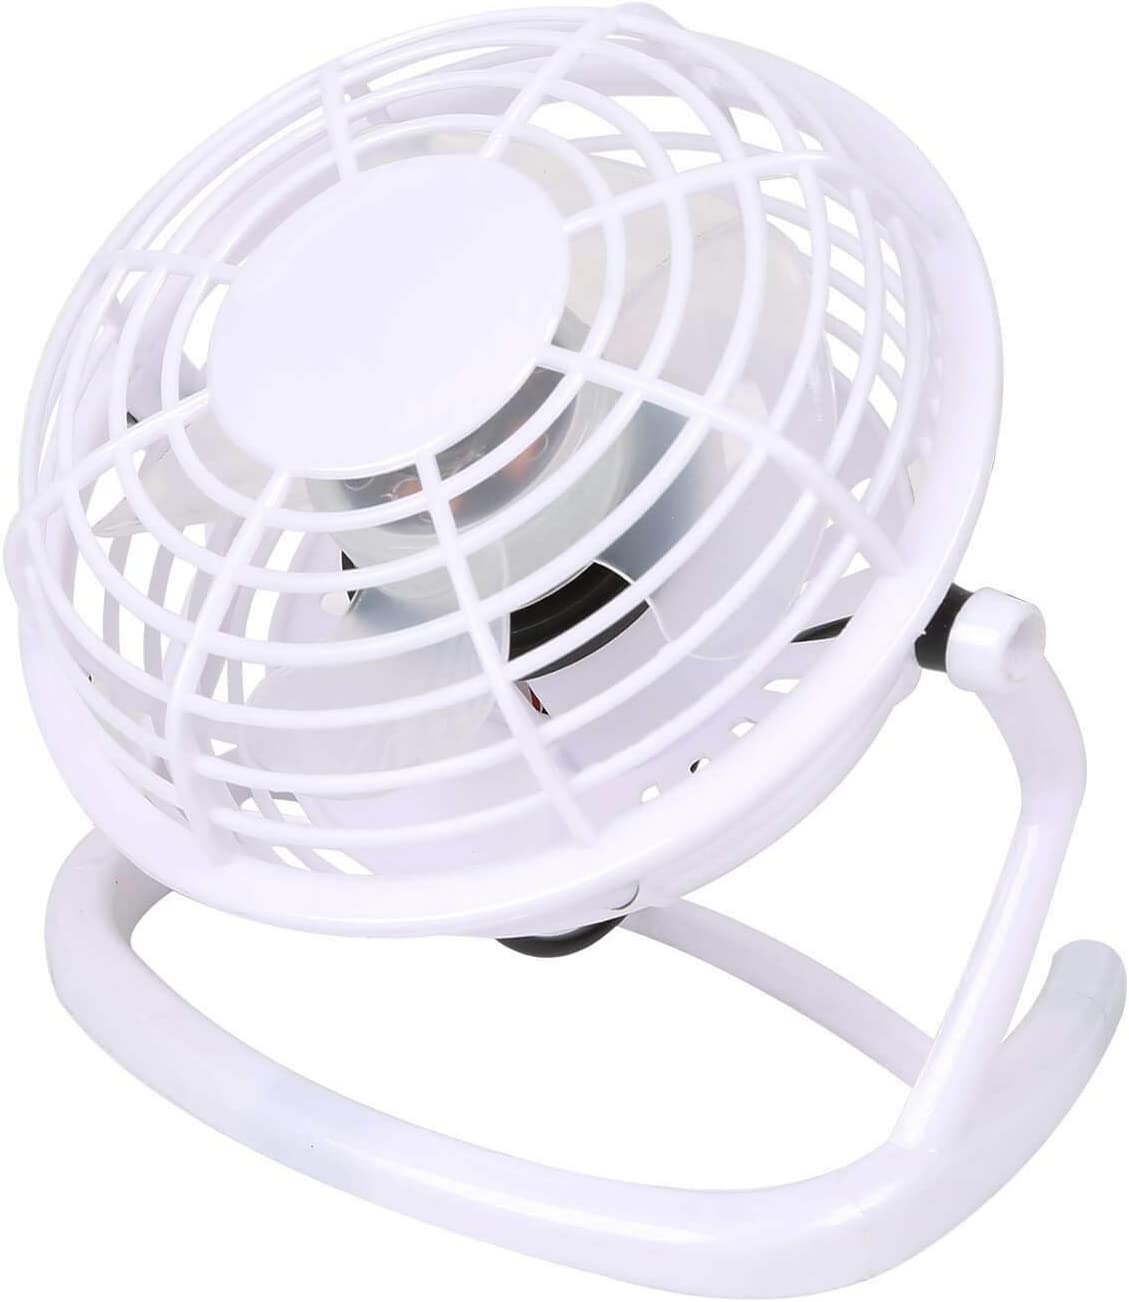 WOODYS HARMONY Mini USB Desk Fan Super Quiet Light Portable Cooling Air Cooler for PC Laptop Notebook Personal Computer White